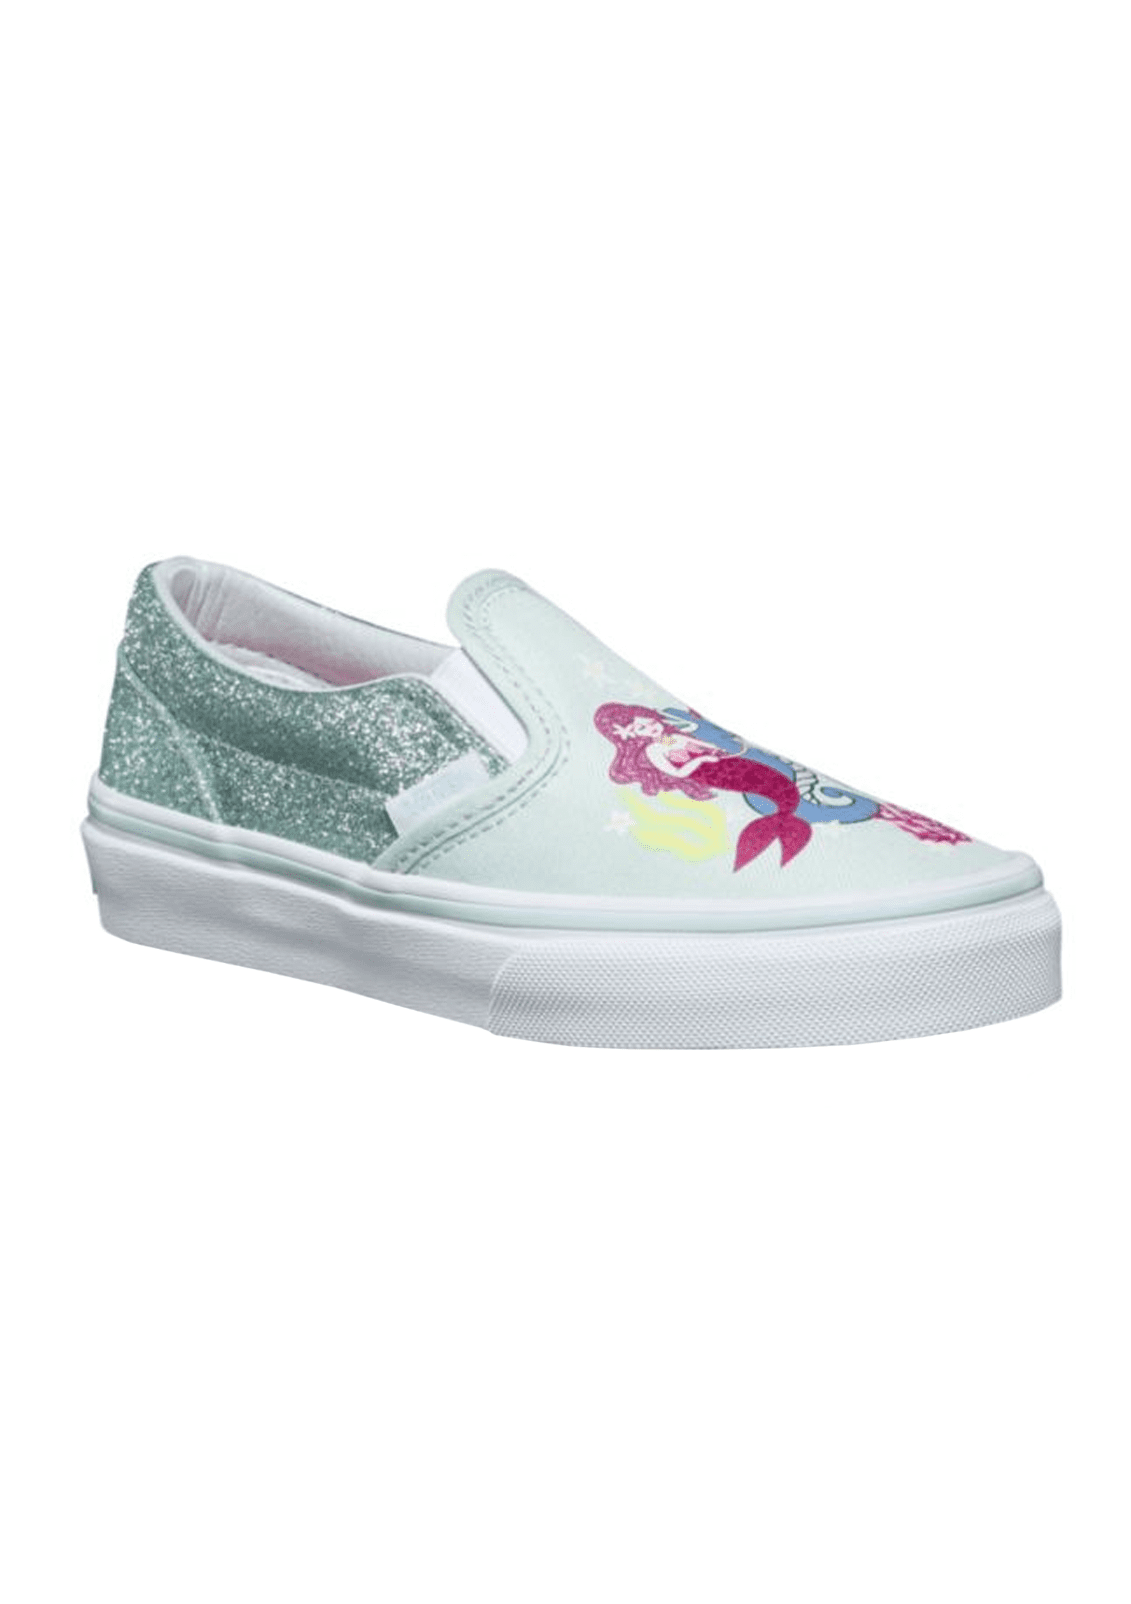 Kids Girls Mermaid Slip-On